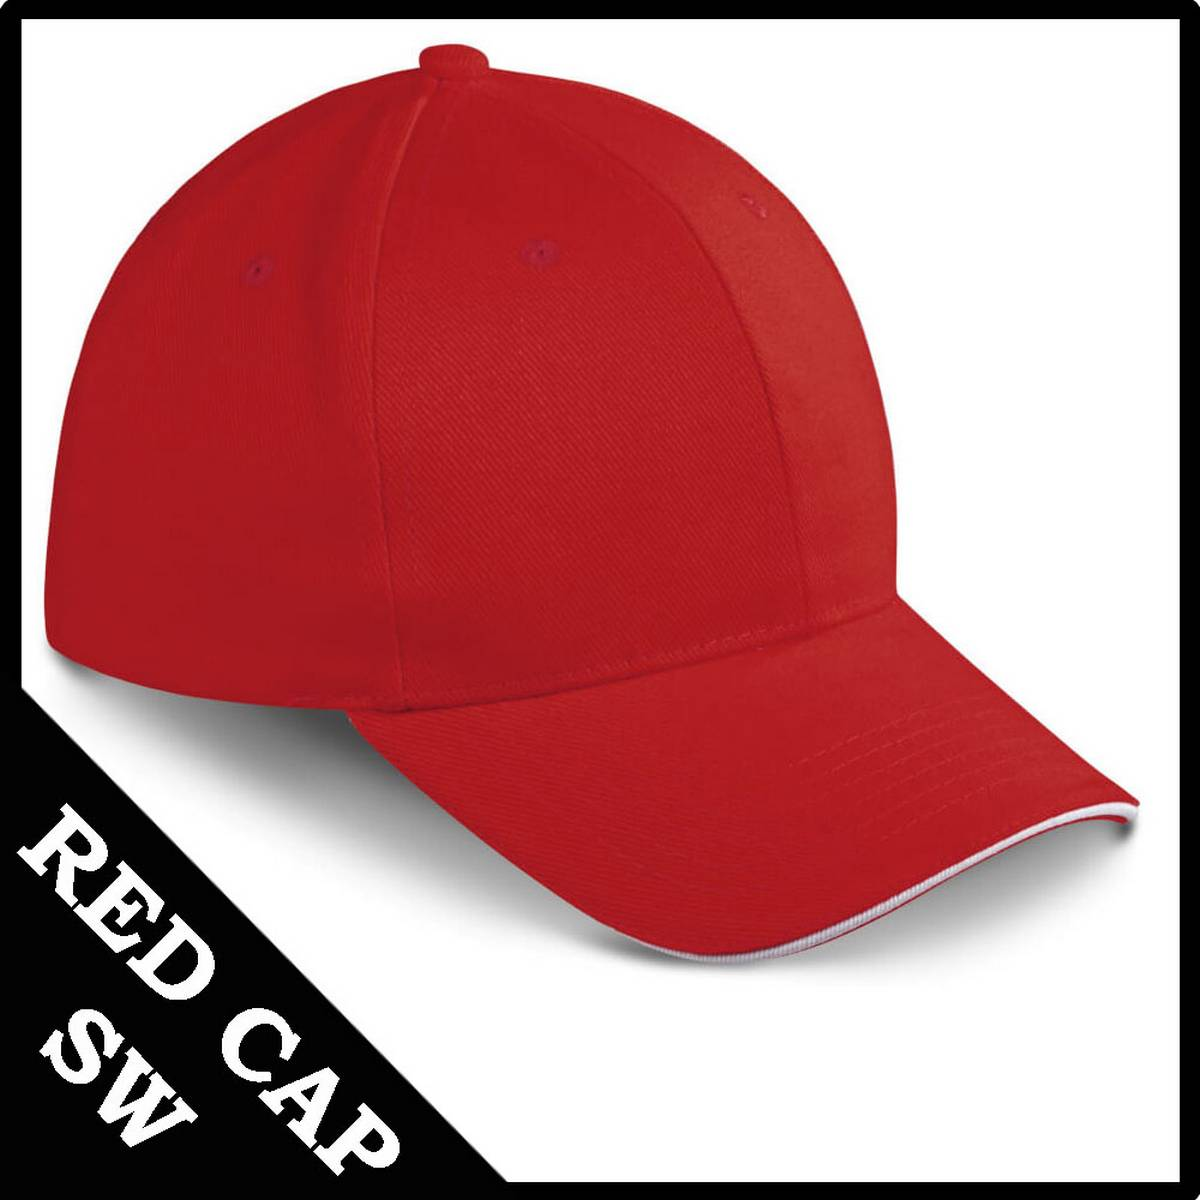 Sun Hats for Sports Visor Caps for Players in Plain and Adjustable Buckle